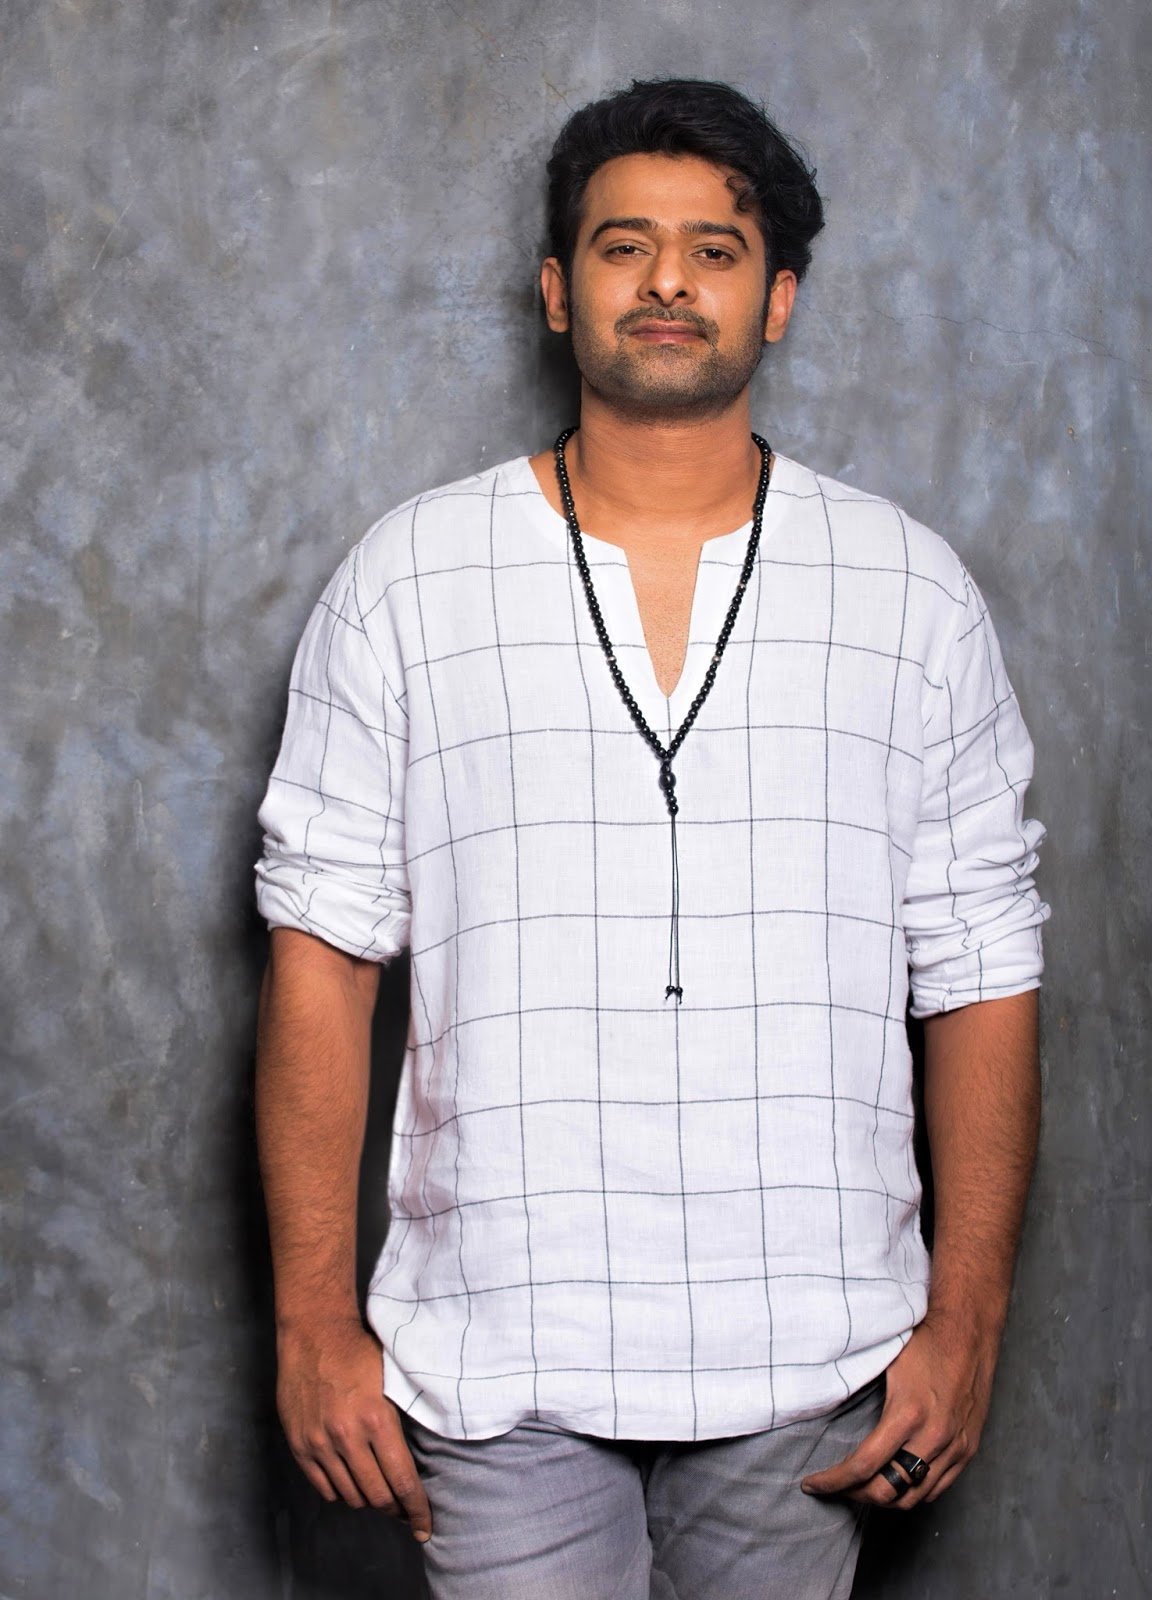 310 Prabhas Hd Images New Look Photos & Pics Download Free